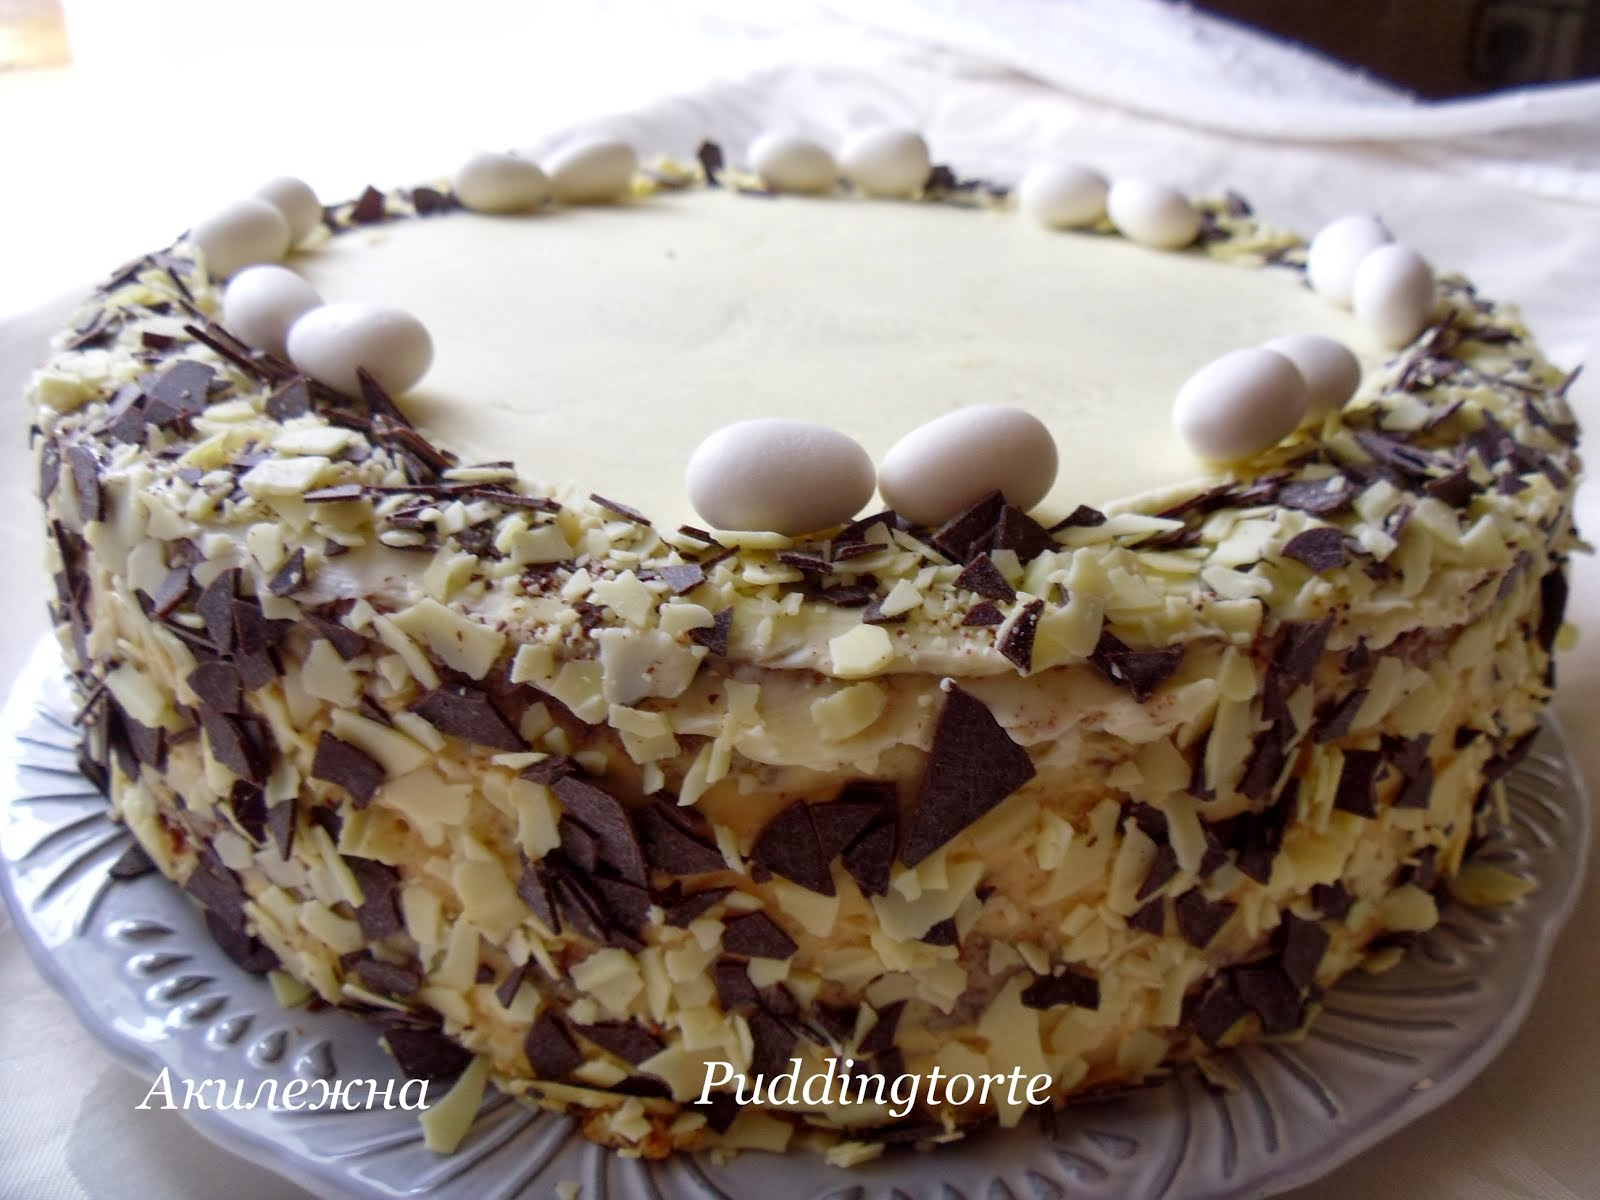 Puddingtorte